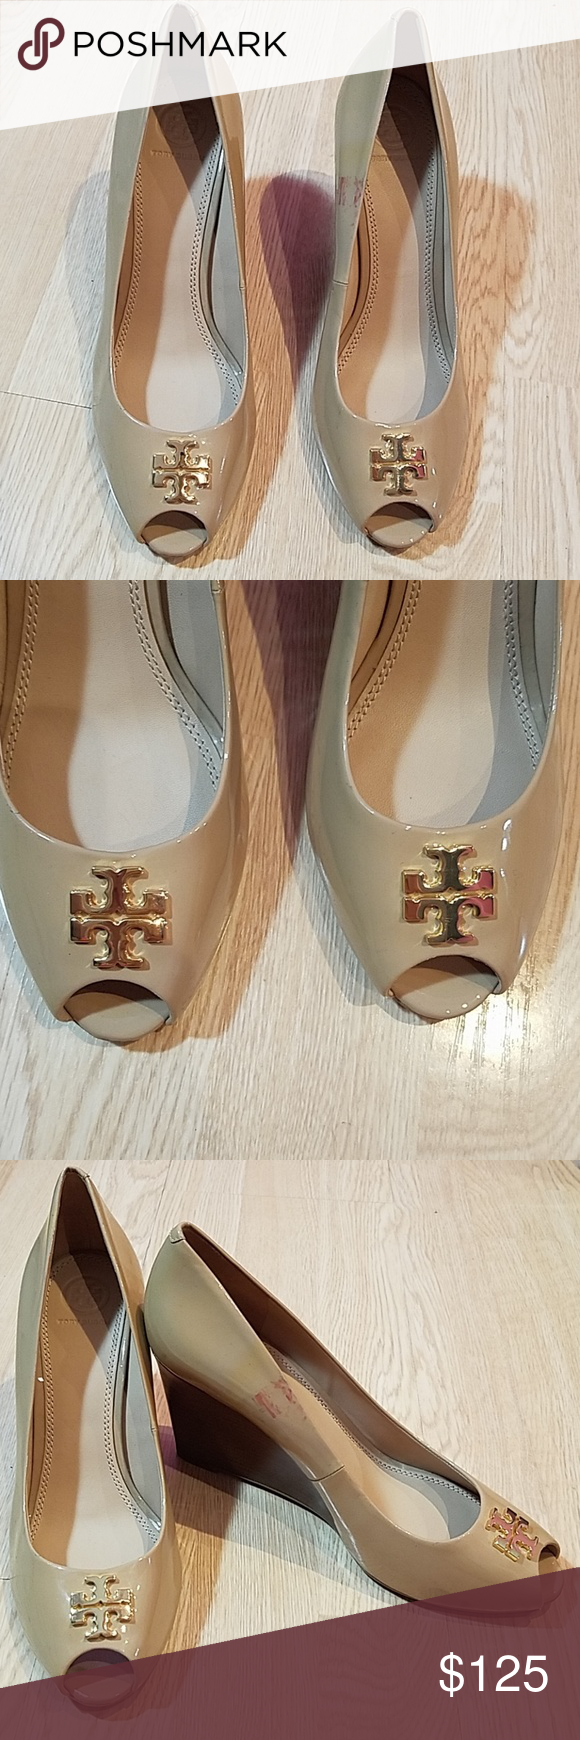 e91cb2dd022a TORY BURCH  JADE  Peep Toe Wedge Patent Leather store display ...